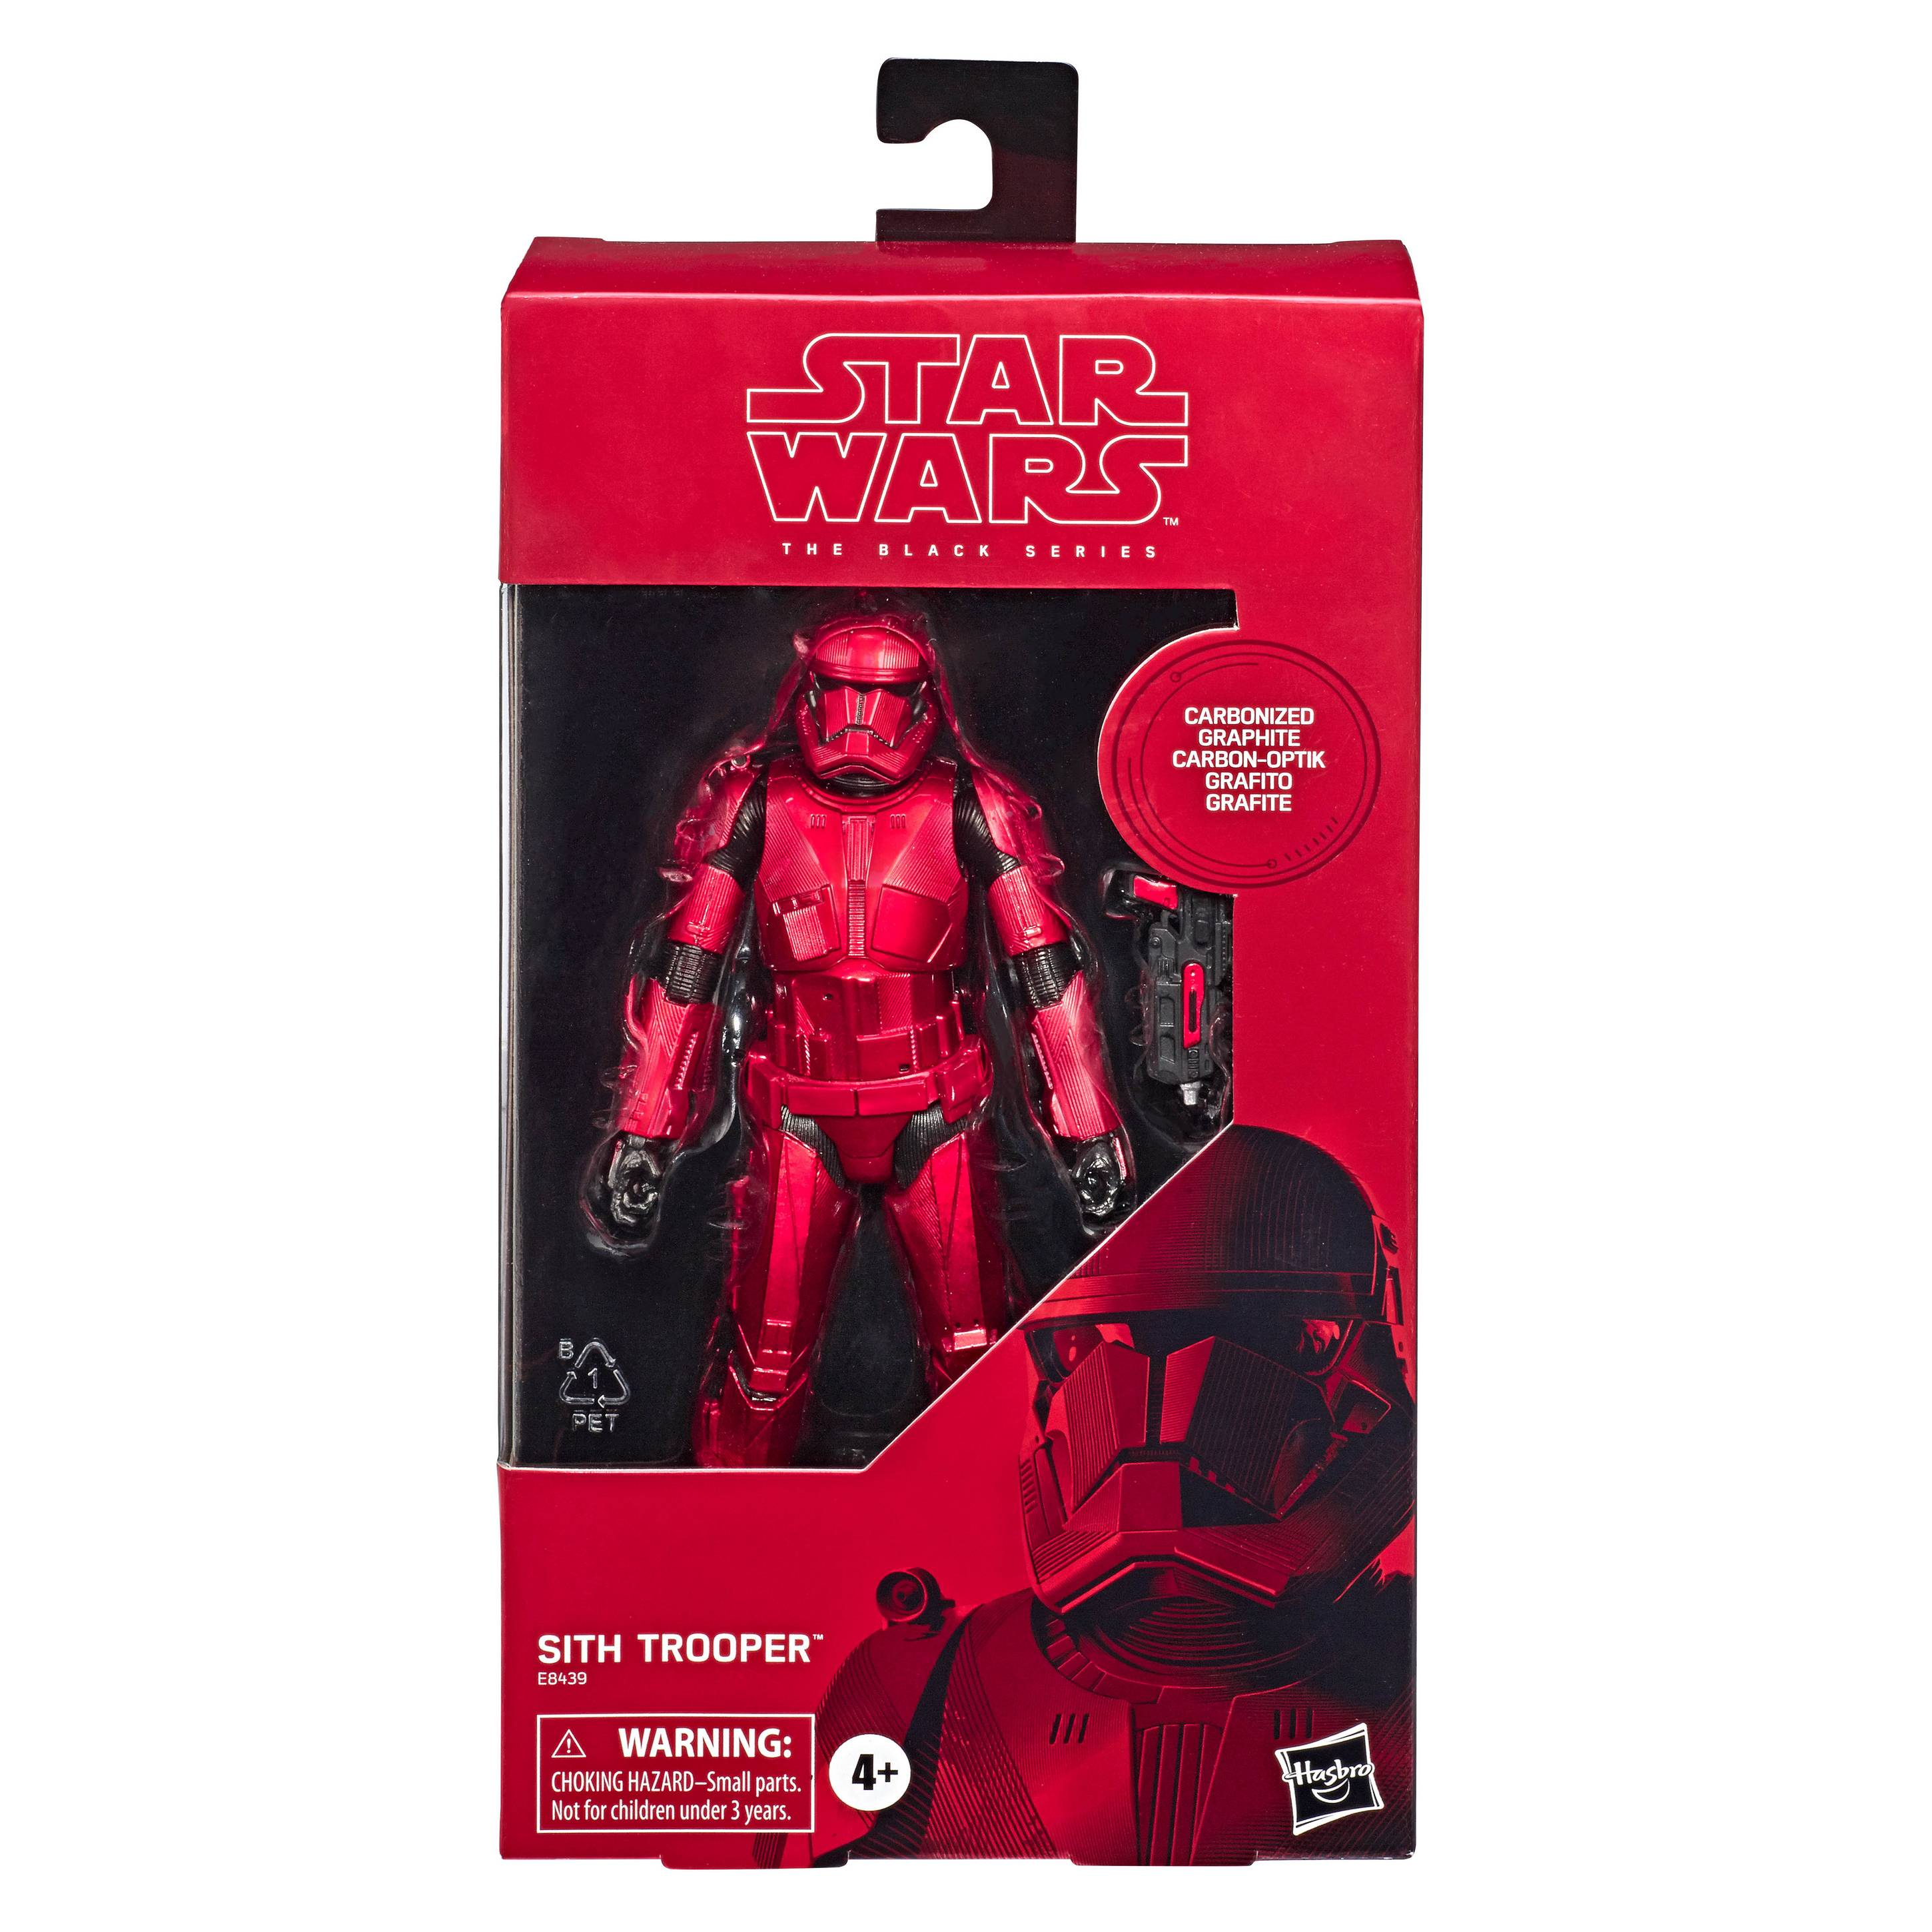 STAR-WARS-THE-BLACK-SERIES-6-INCH-SITH-TROOPER-CARBONIZED-COLLECTION-Figure-in-pck.jpg